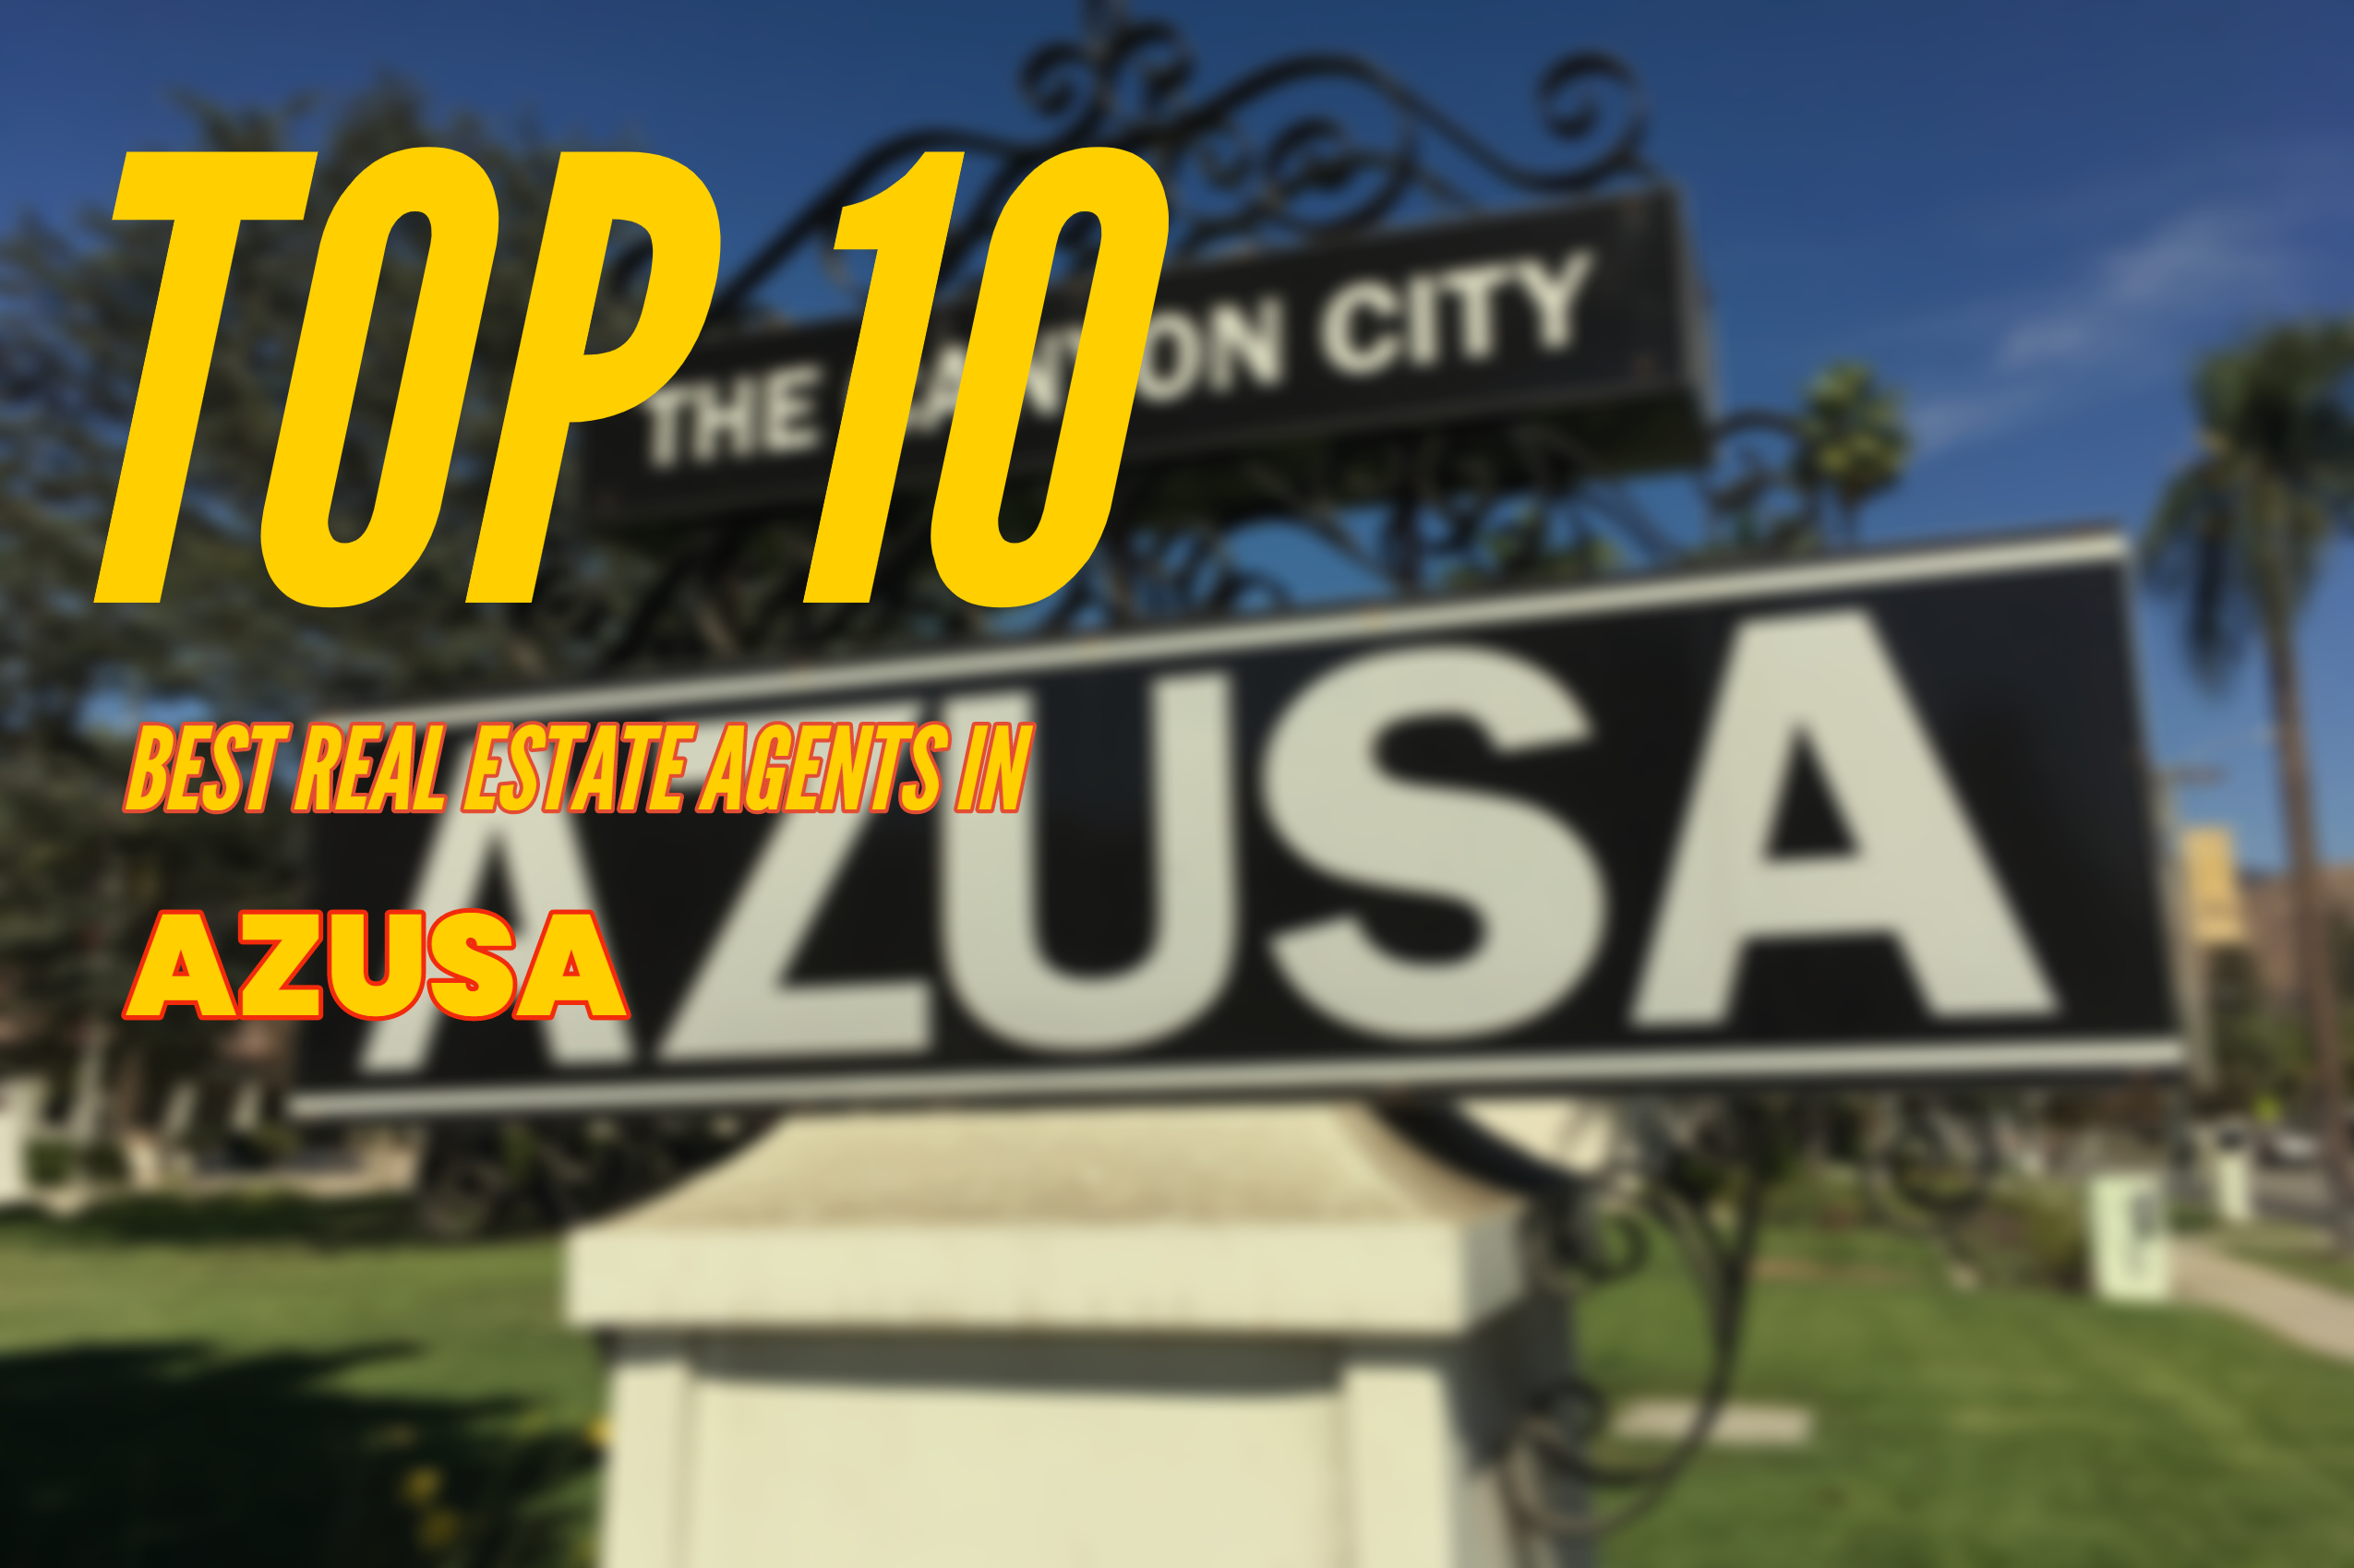 TOP 10 Real Estate Agents in Azusa